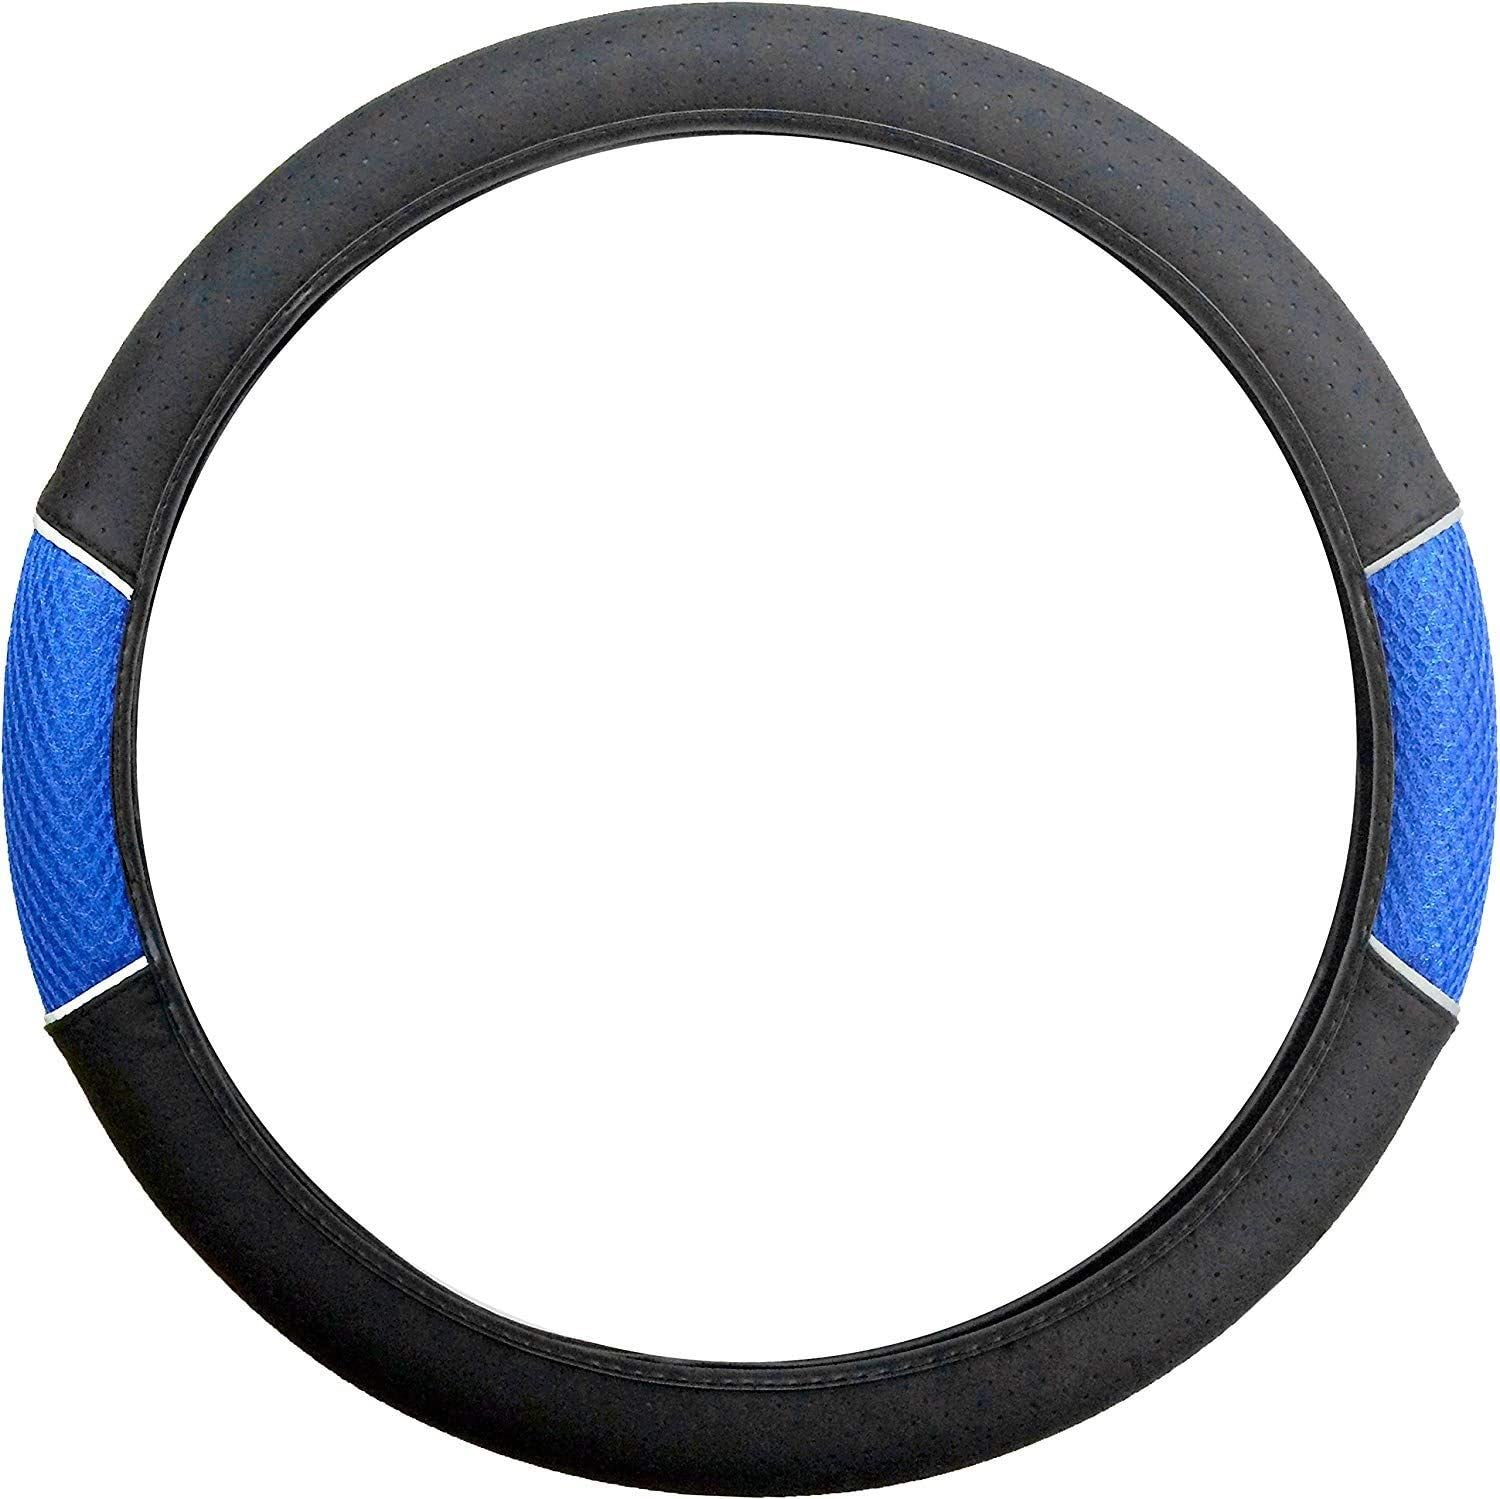 UKB4C Blue /& Black Steering Wheel /& Front Seat Cover set for Vauxhall Tigra All Models